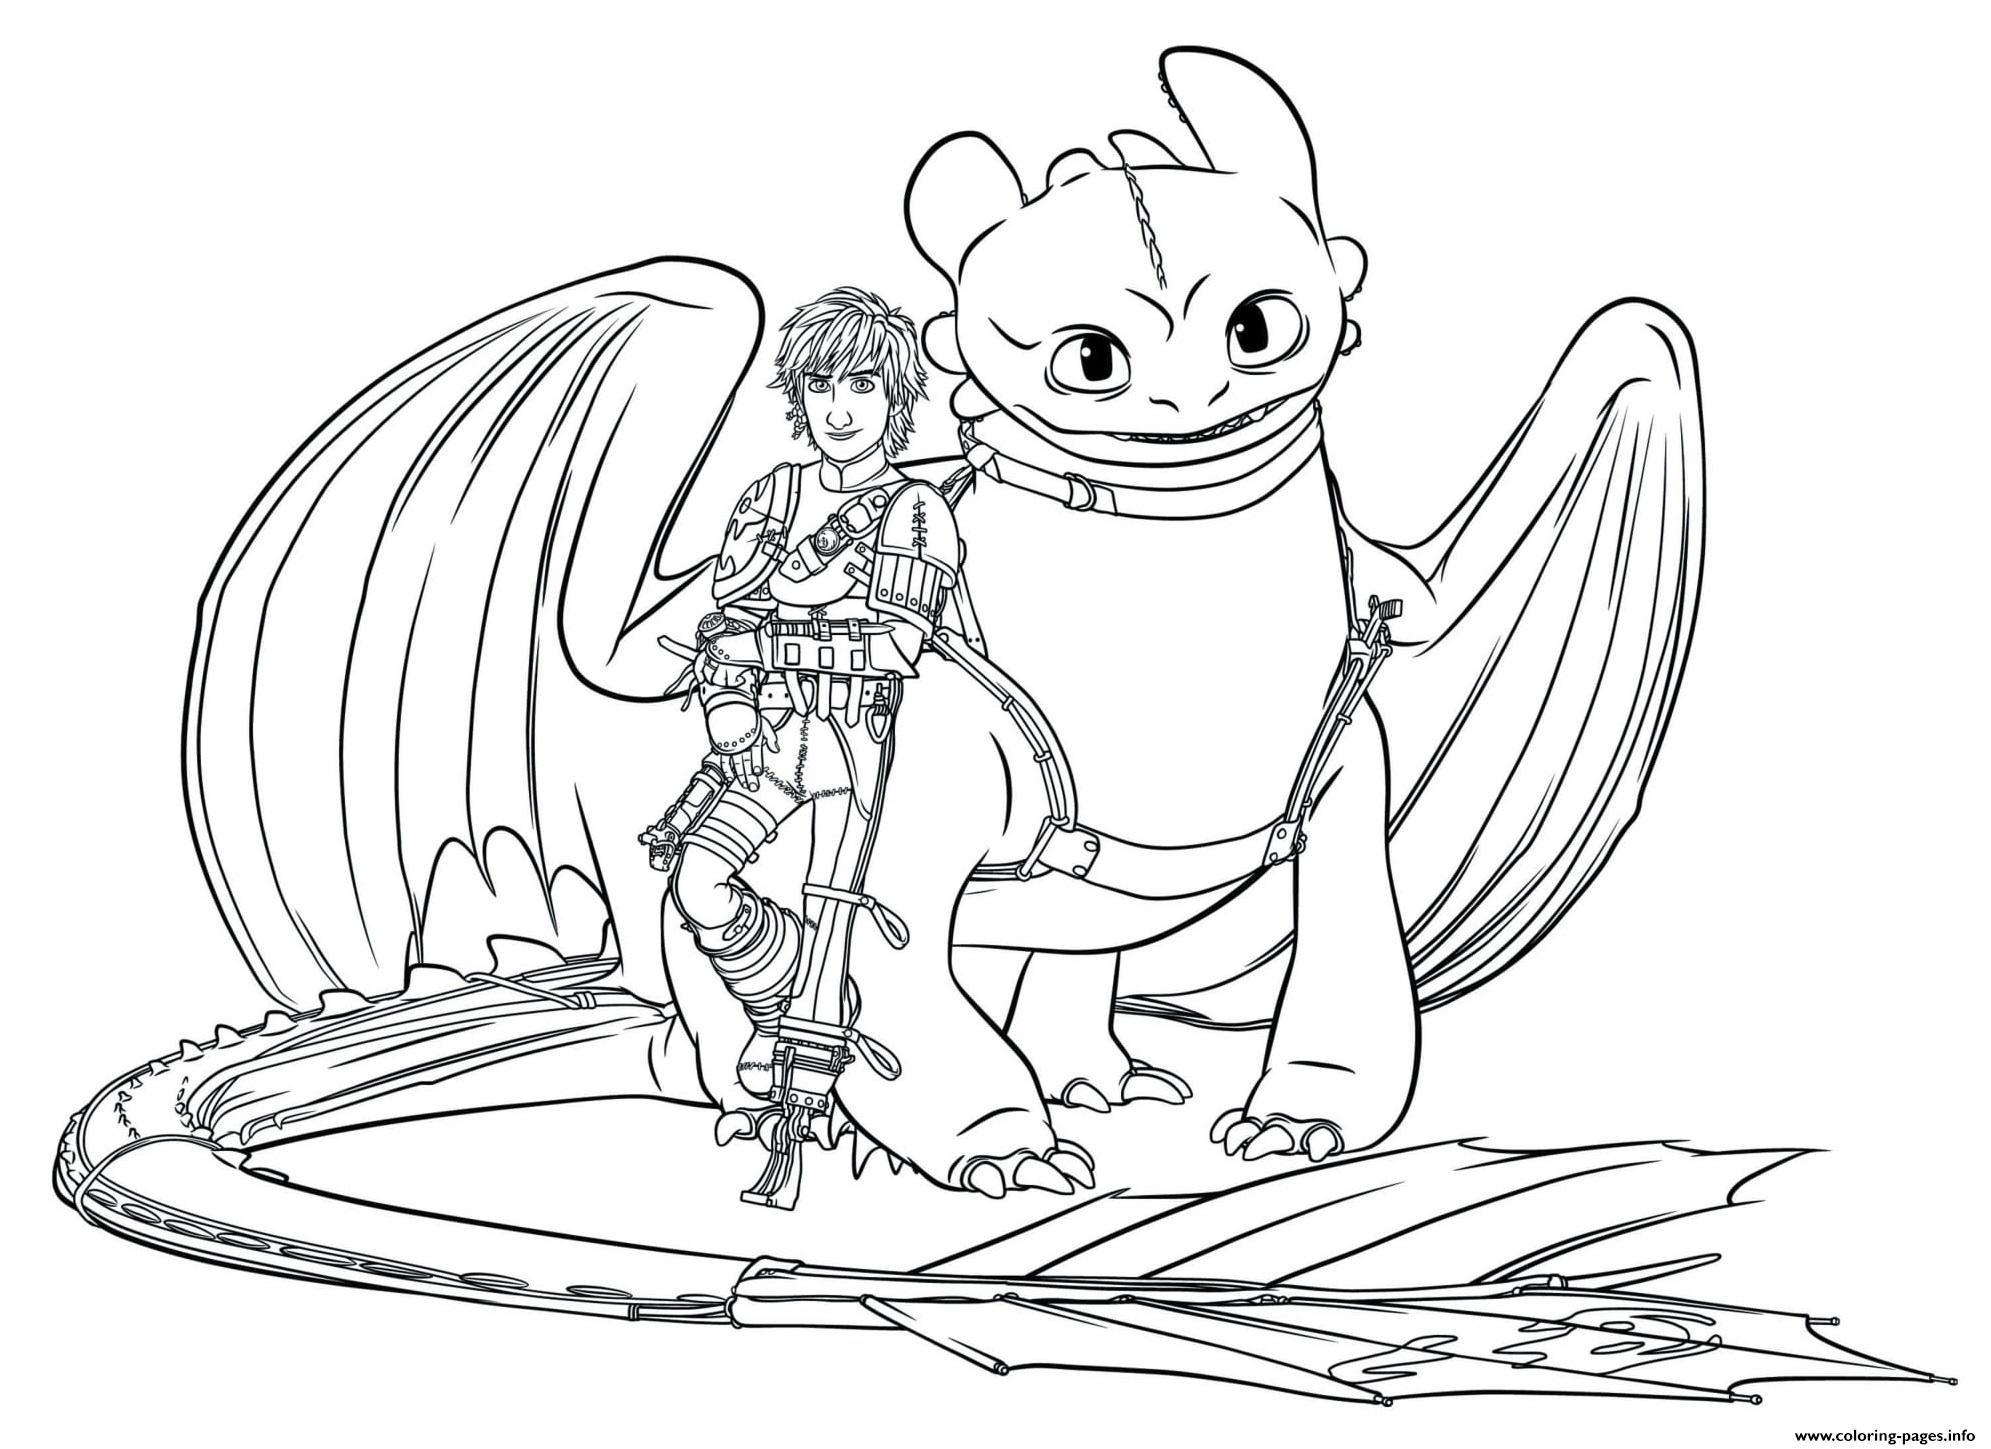 Hiccup Toothless Dragon 3 Coloring